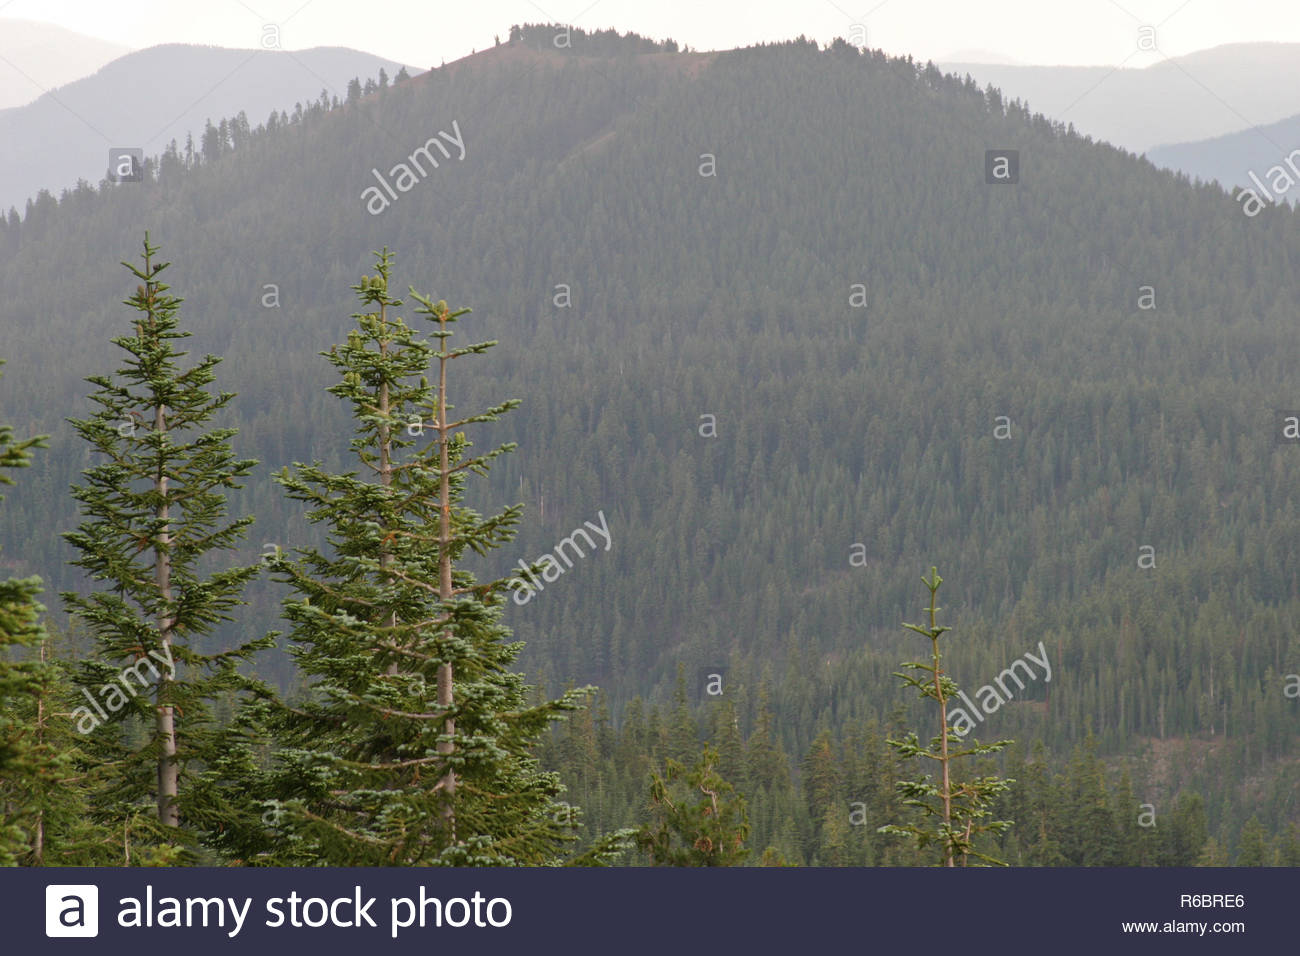 Crater Peak and forest canopy, Crater Lake National Park, Oregon, USA - Stock Image